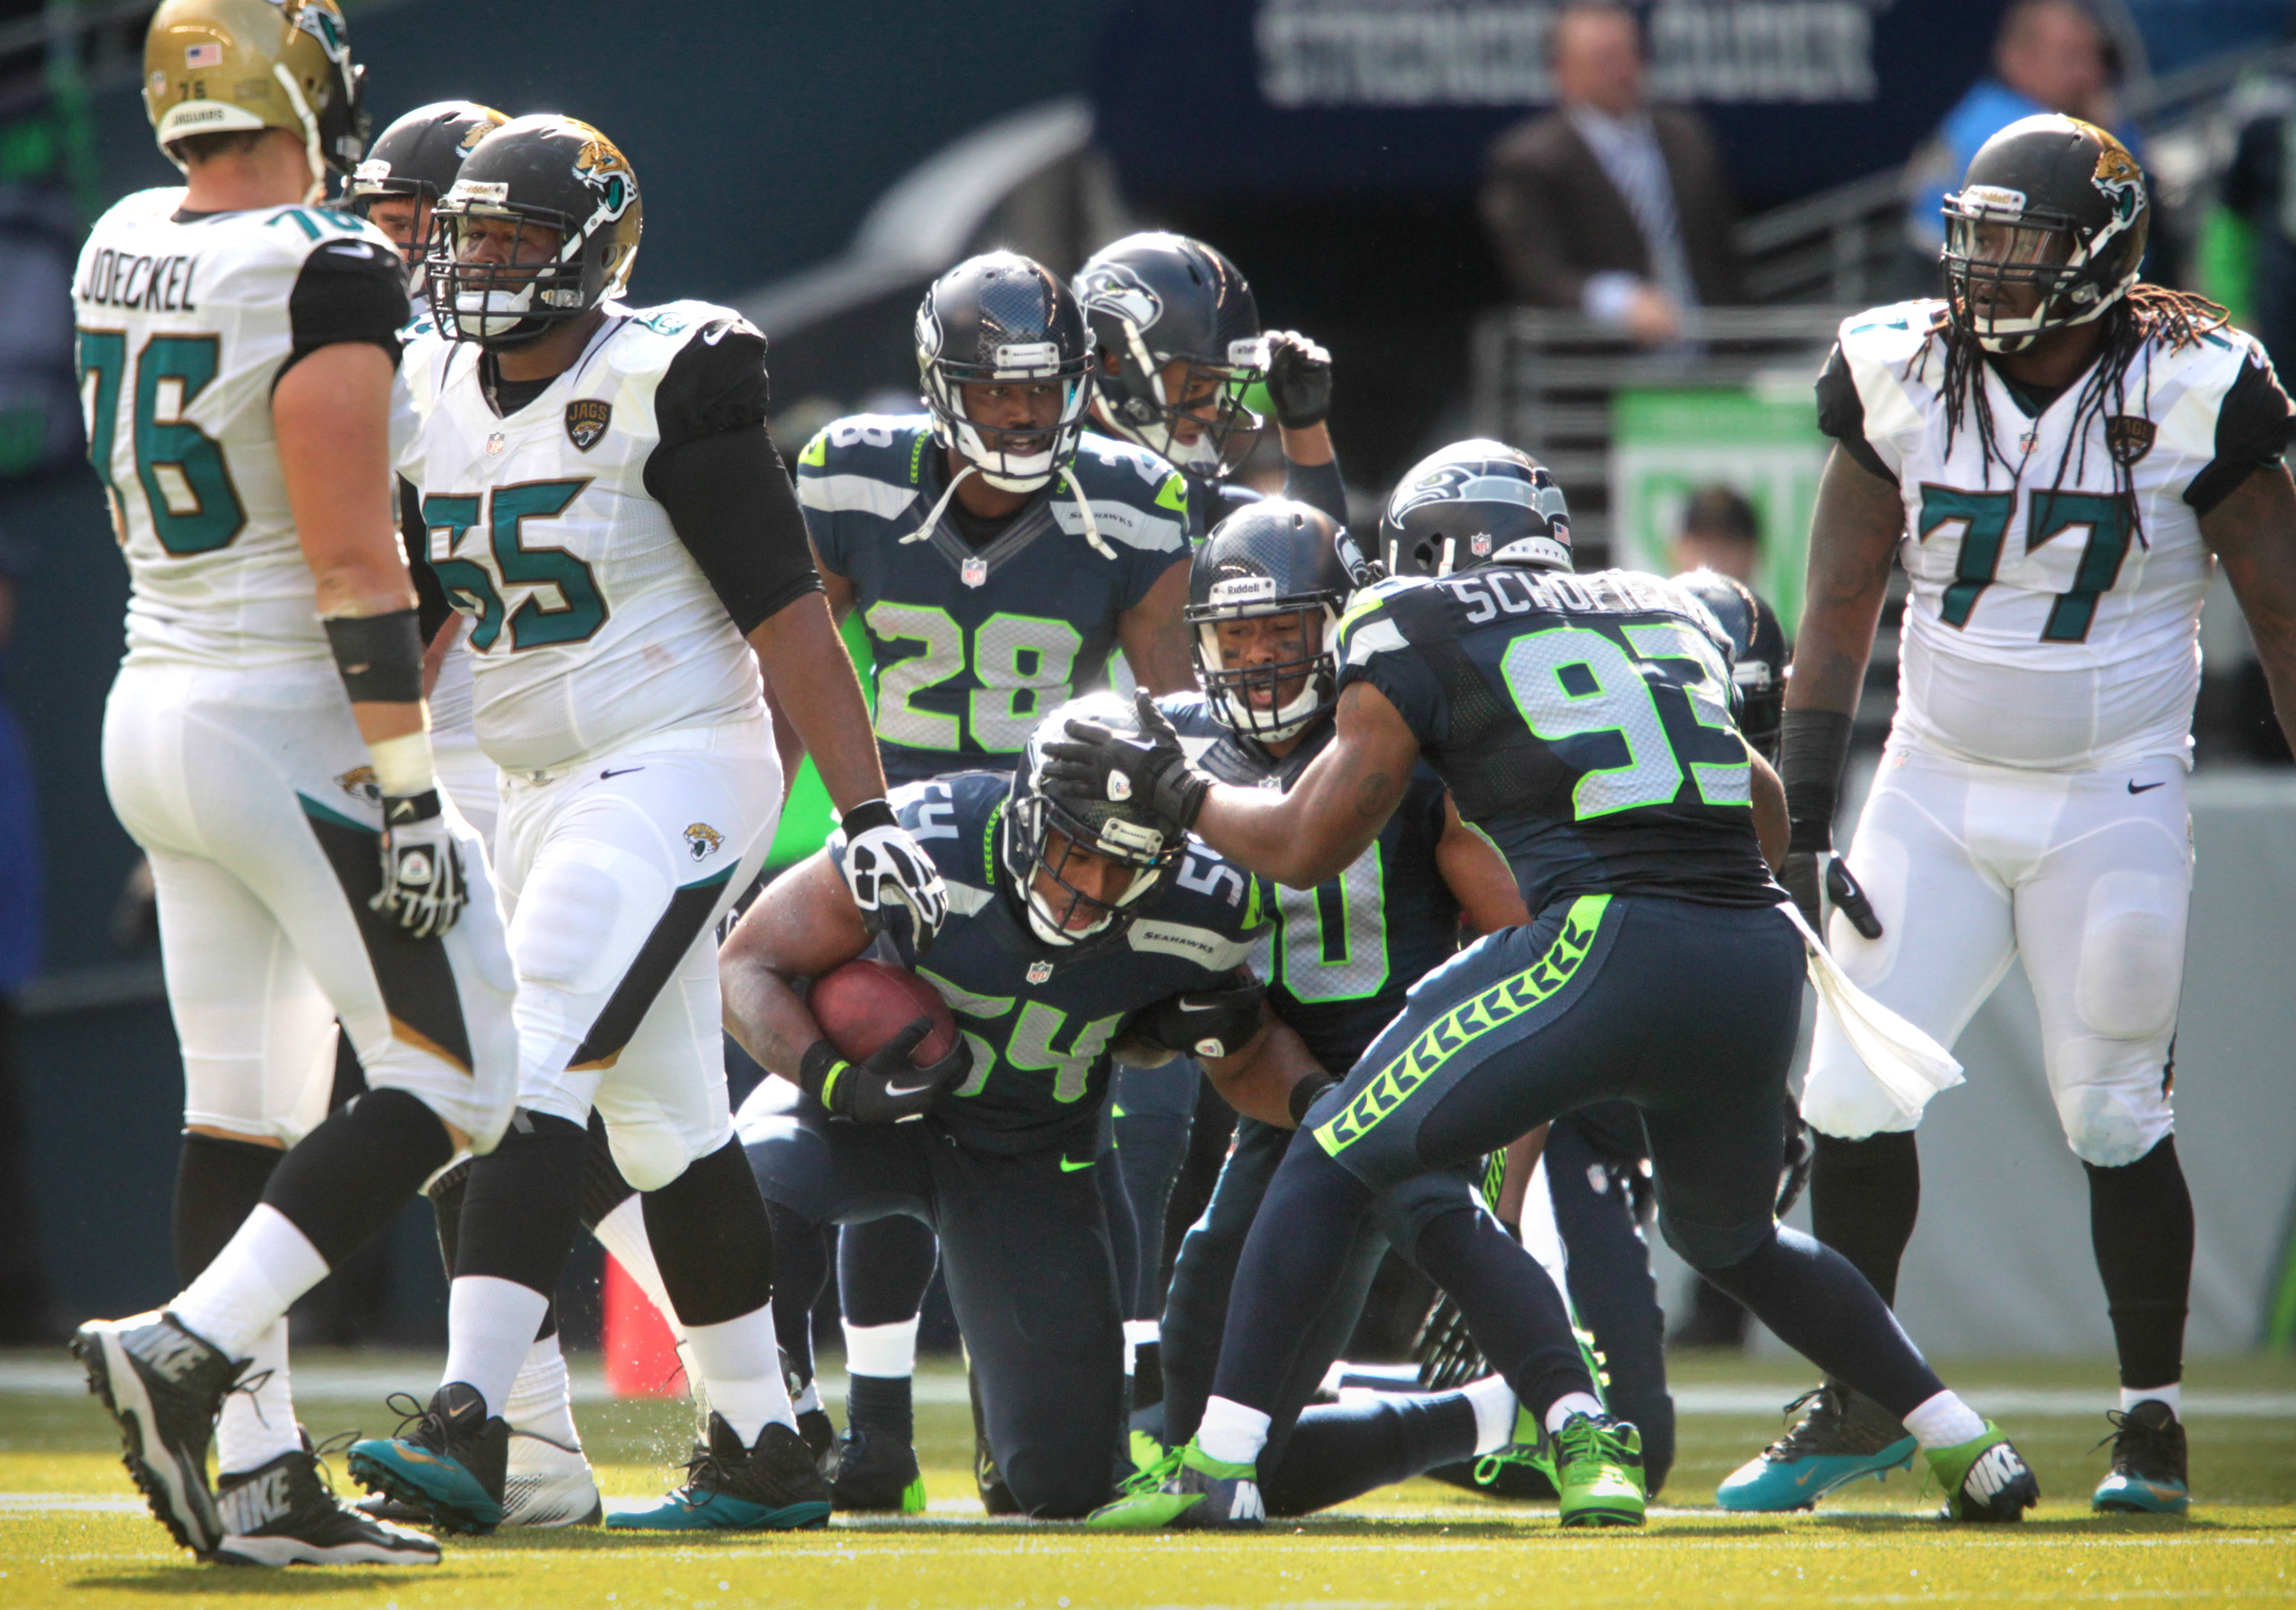 Seattle faces Houston looking to improve to 4-0